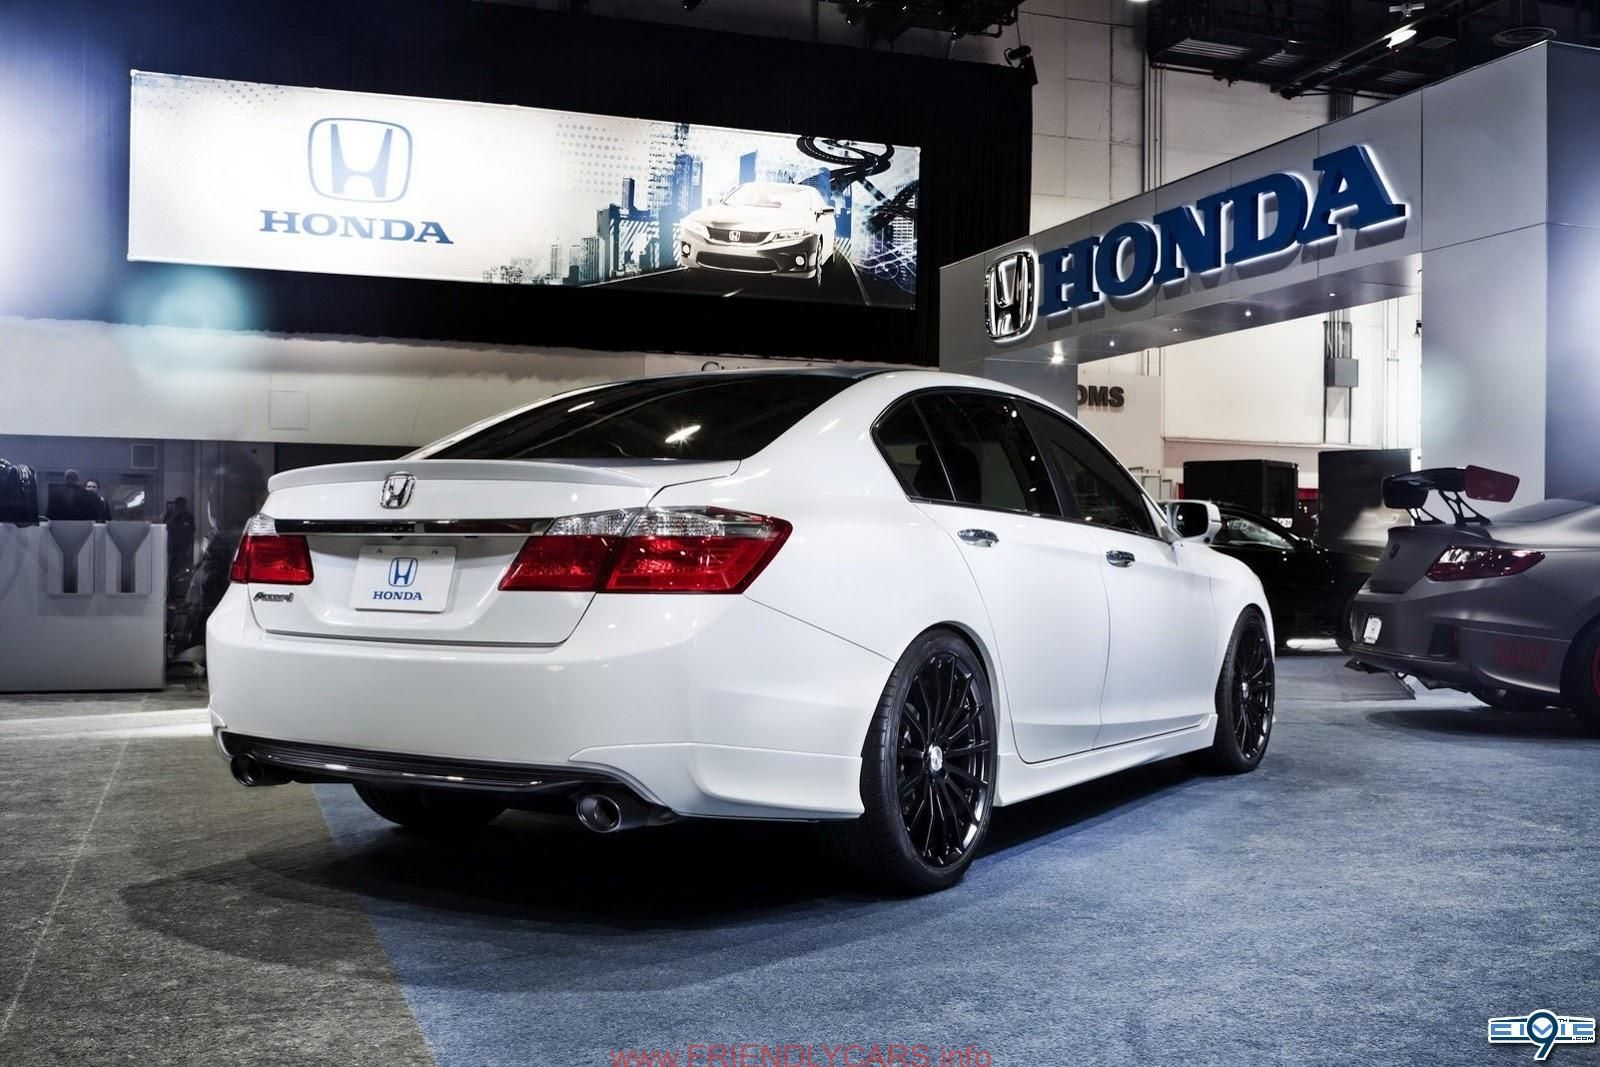 Nice honda accord coupe white with black rims car images hd 2013 honda accord manual interior